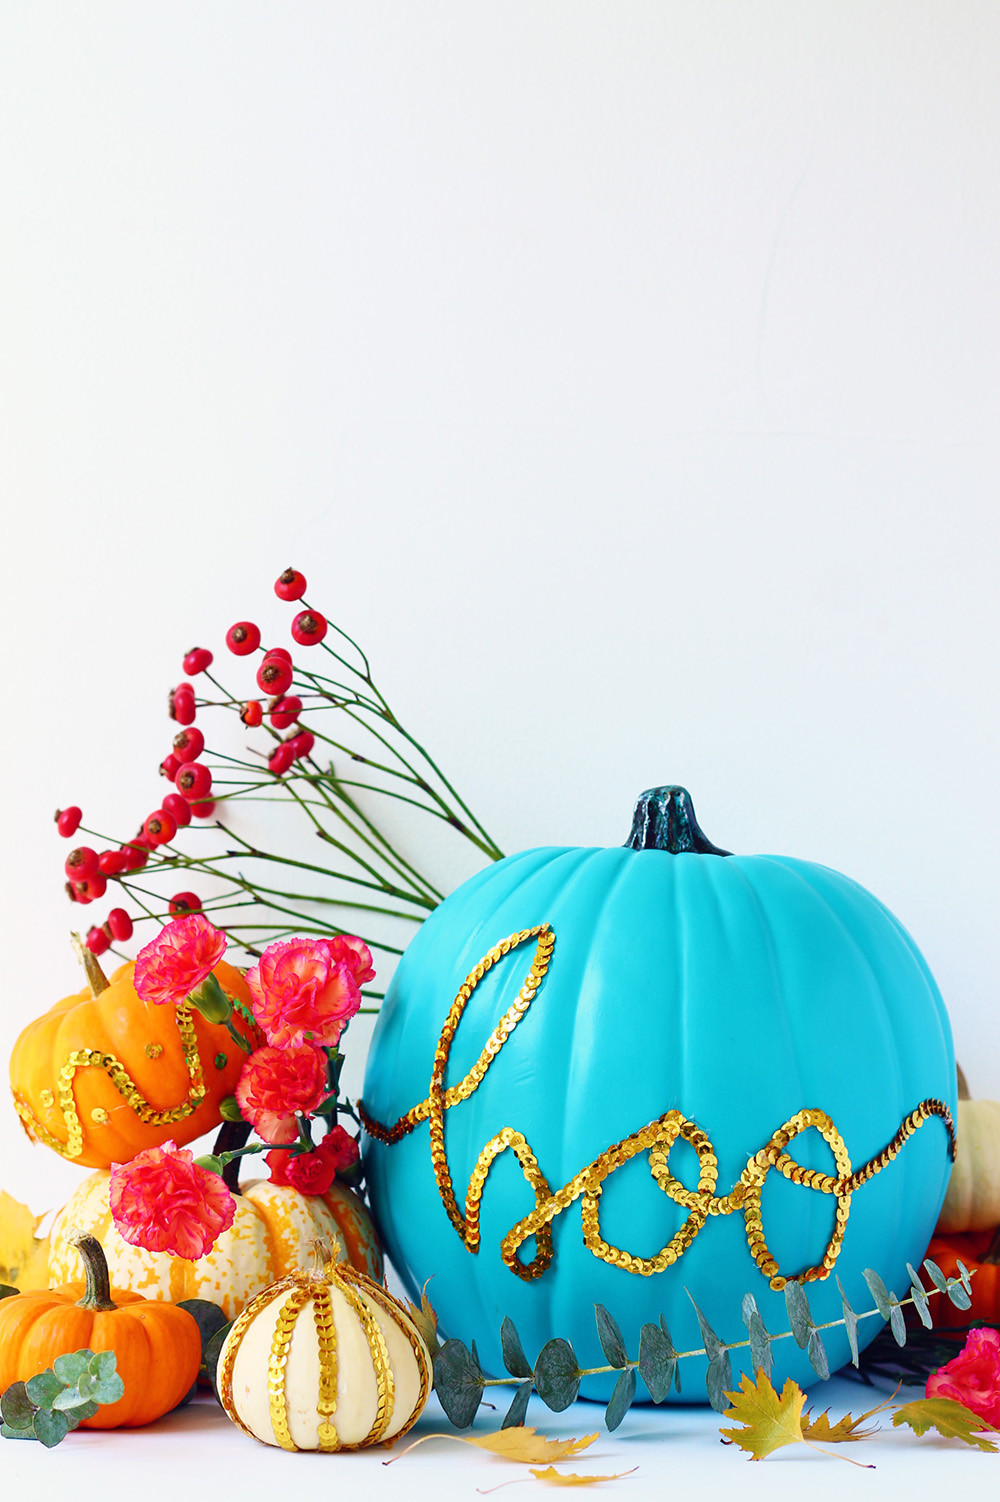 10+1 ELEGANT decor ideas with pumpkins. Decorate your pumpkin with teal colour and gold sequins for halloween